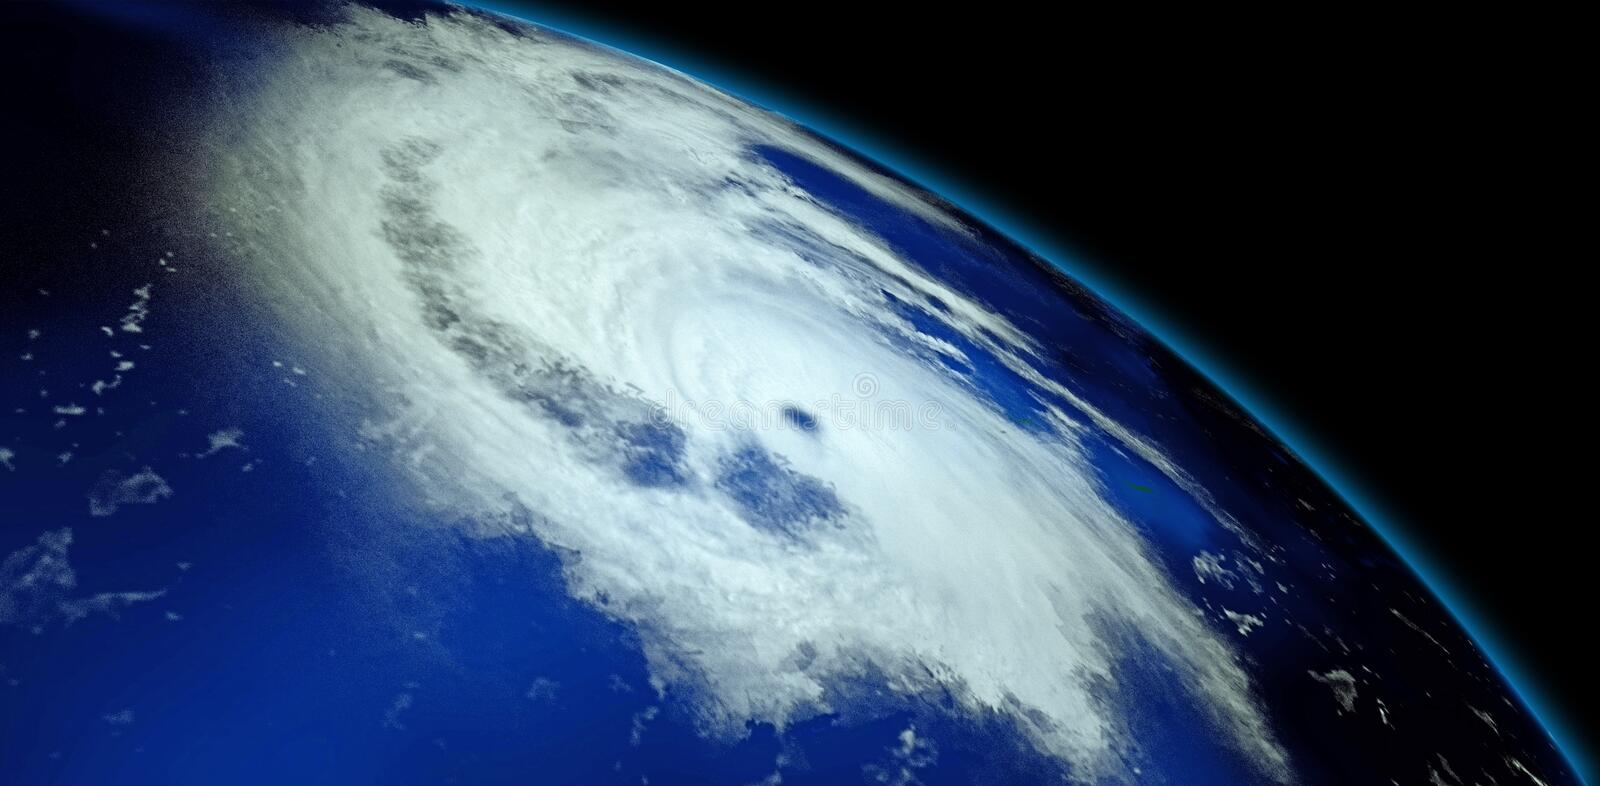 Extremely detailed and realistic high resolution 3D illustration of a Hurricane. Shot from Space. Elements of this image are furni. Extremely detailed and royalty free stock photo